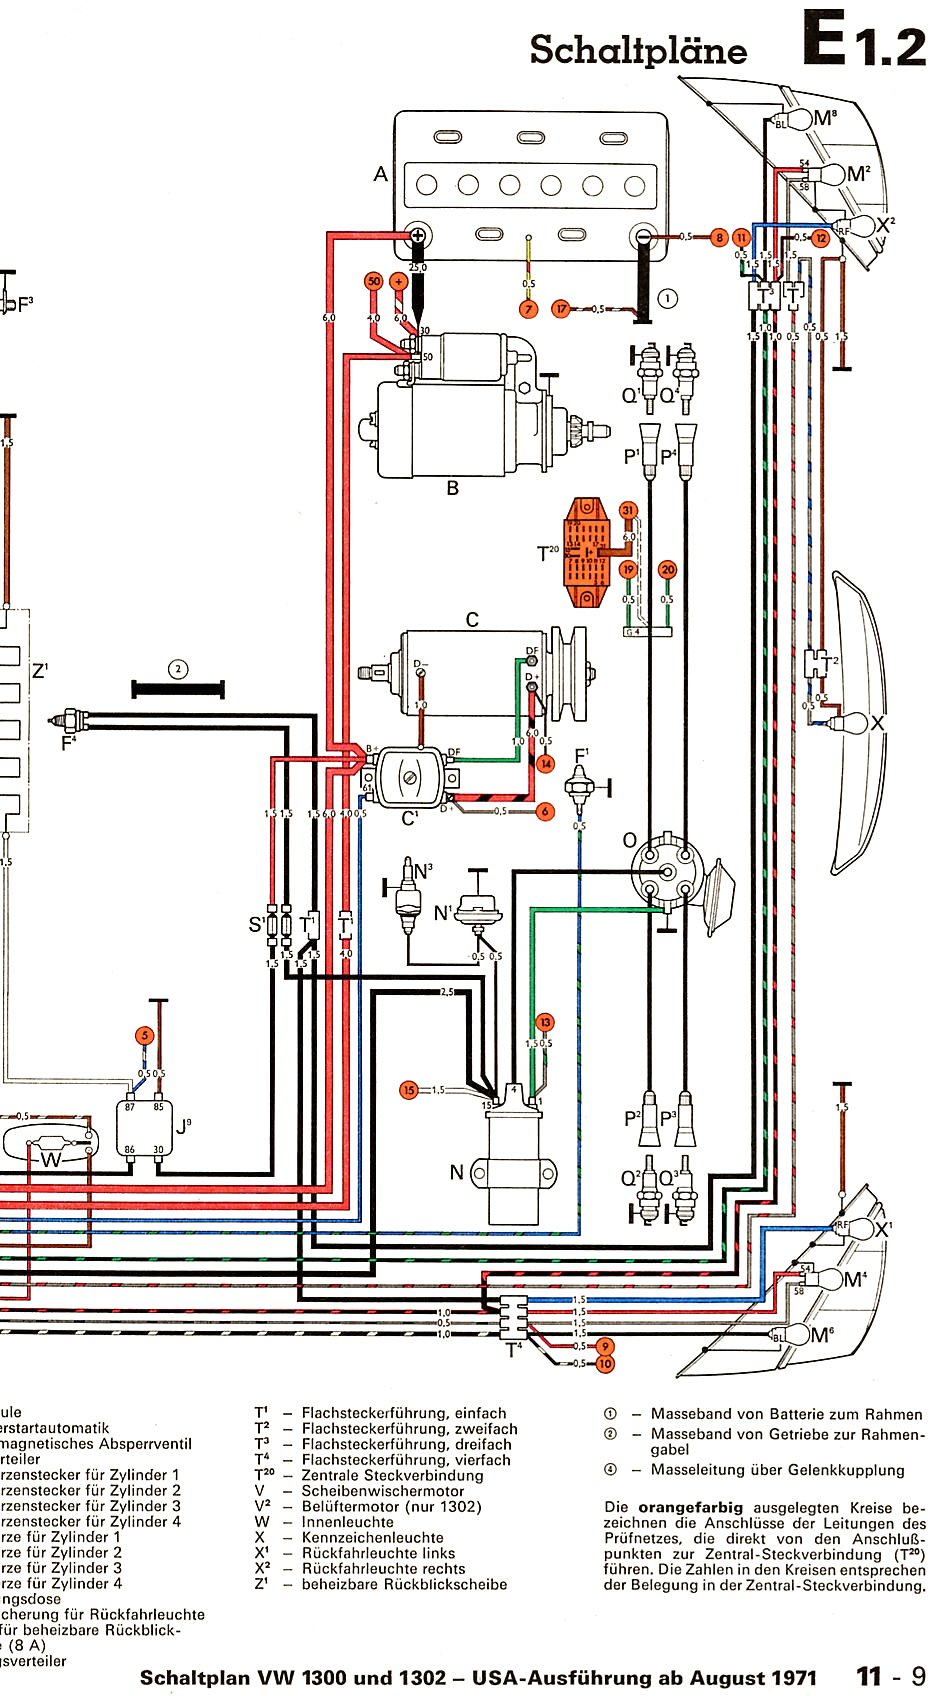 1300_and_1302_USA_from_August_1971 2 73 super beetle voltage regulator shoptalkforums com vw voltage regulator wiring diagram at gsmx.co